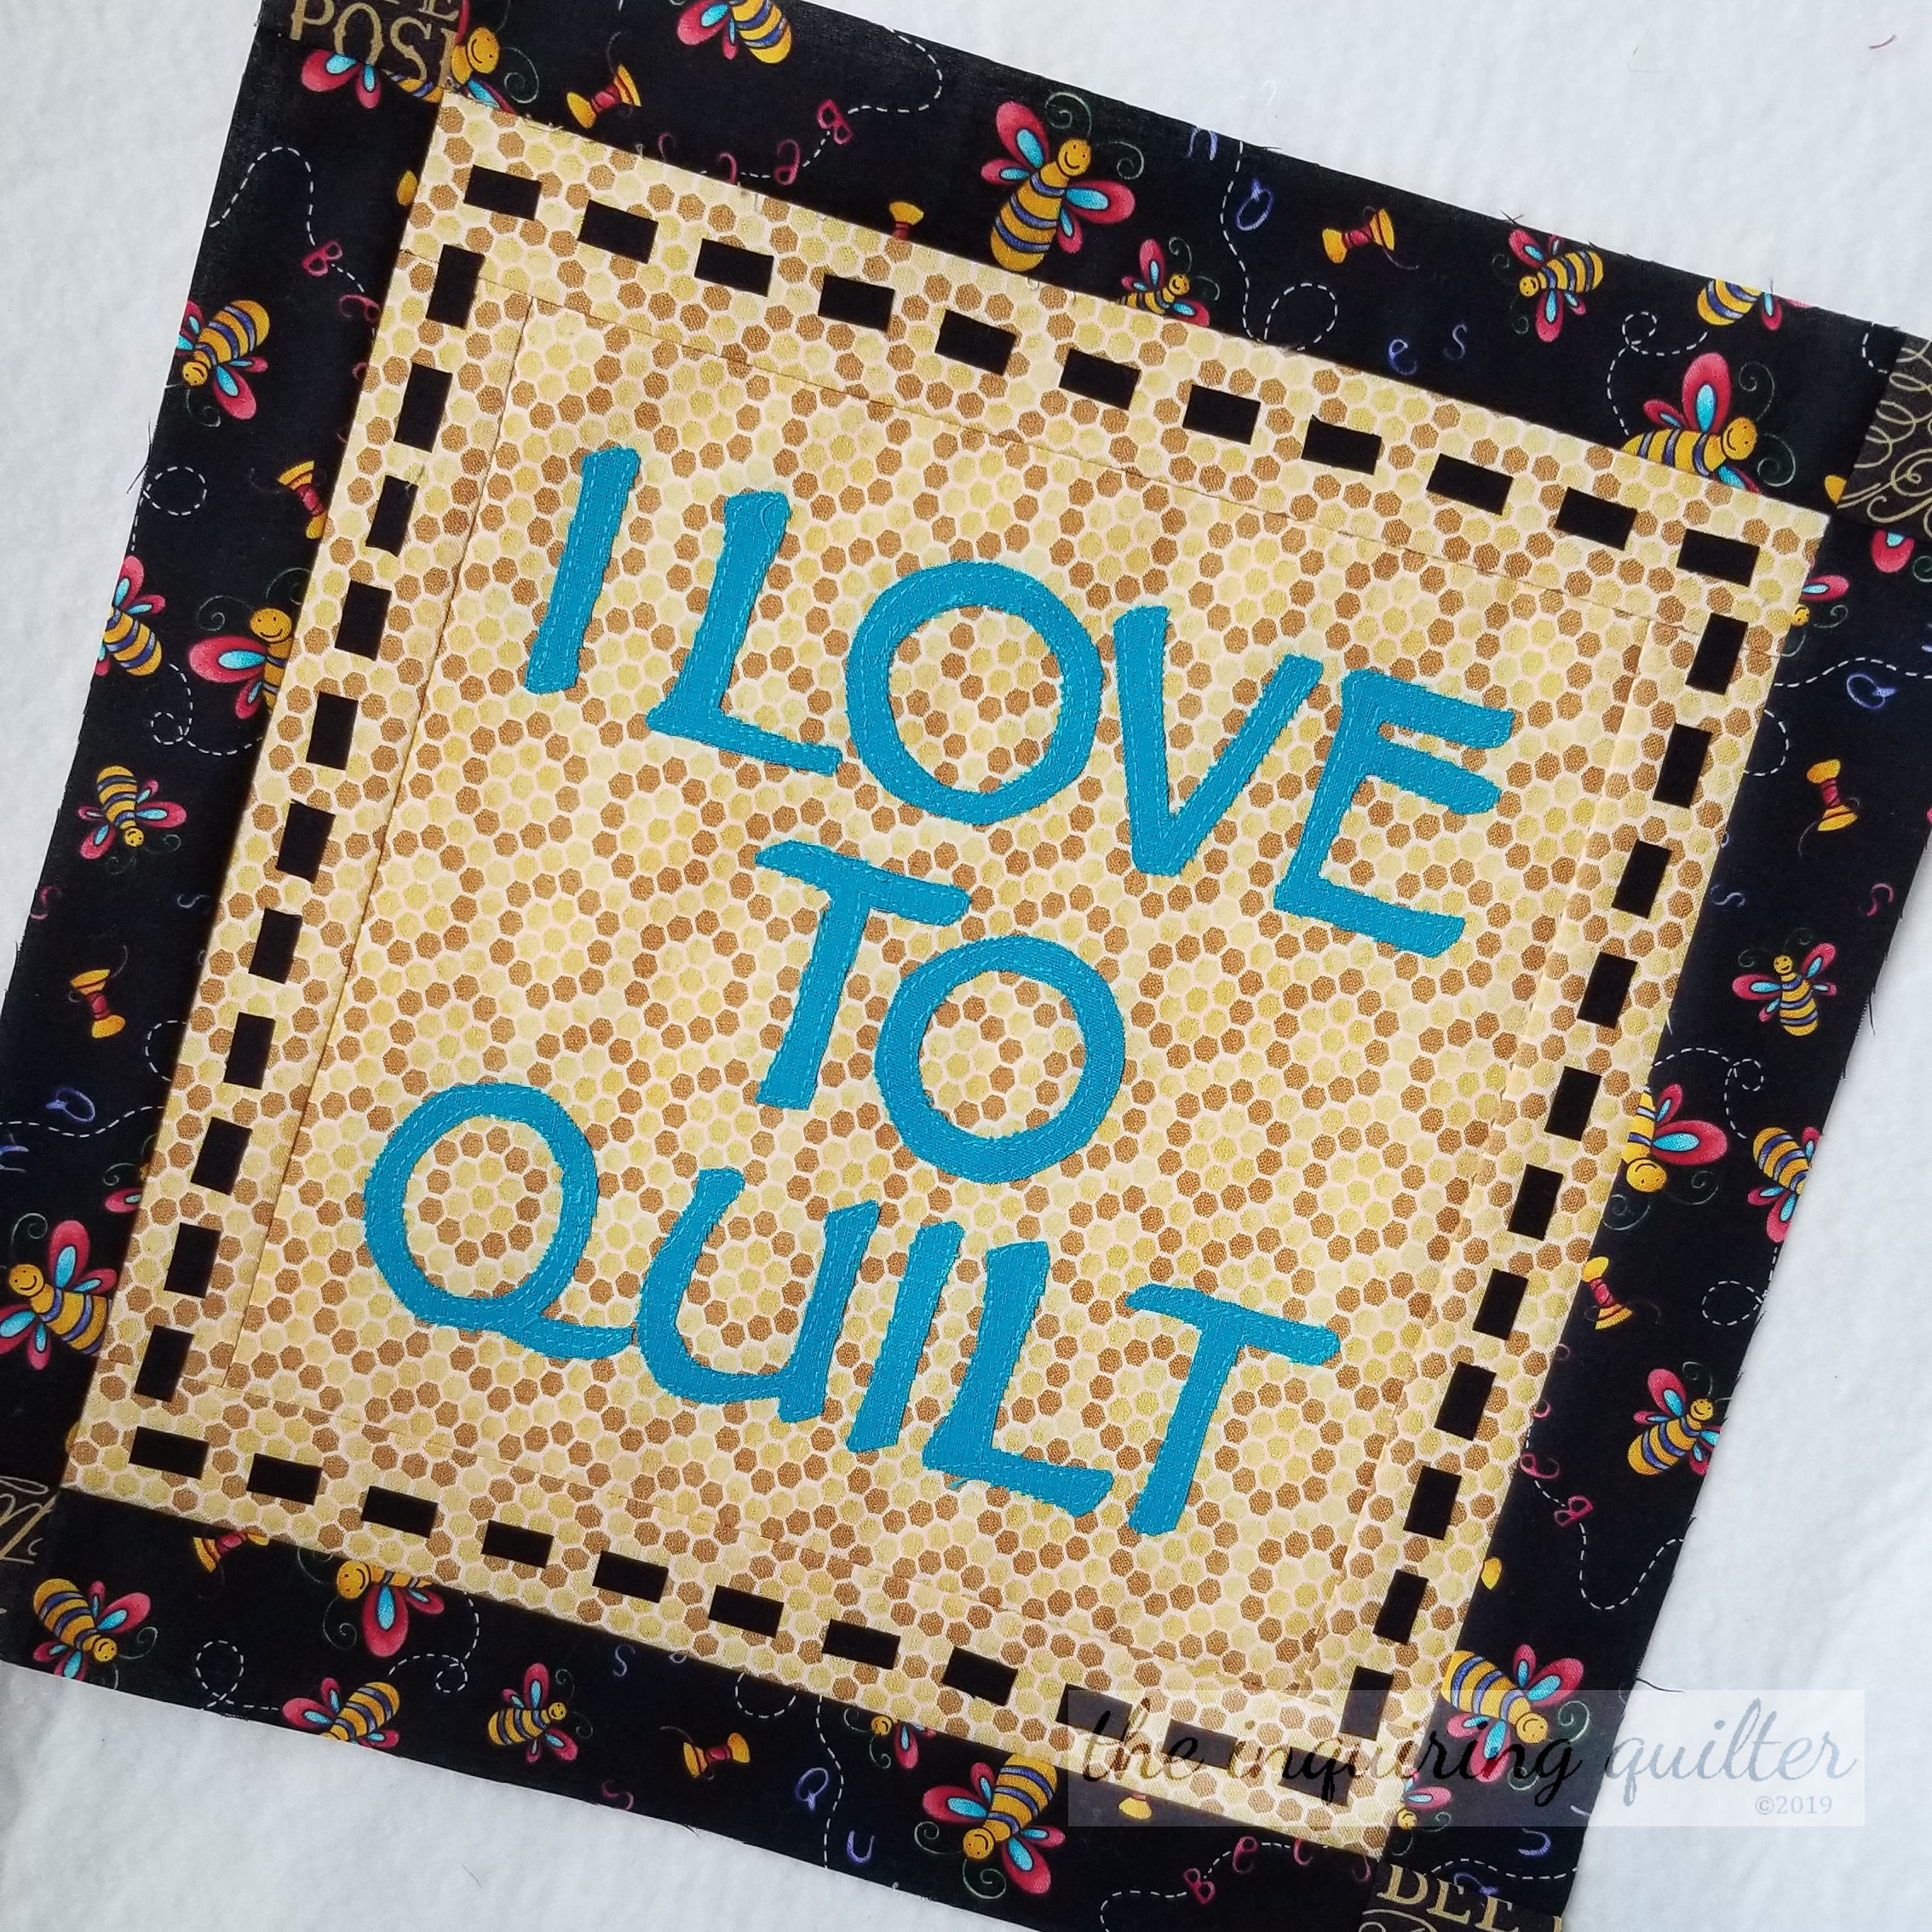 I Love to Quilt block 3.jpg